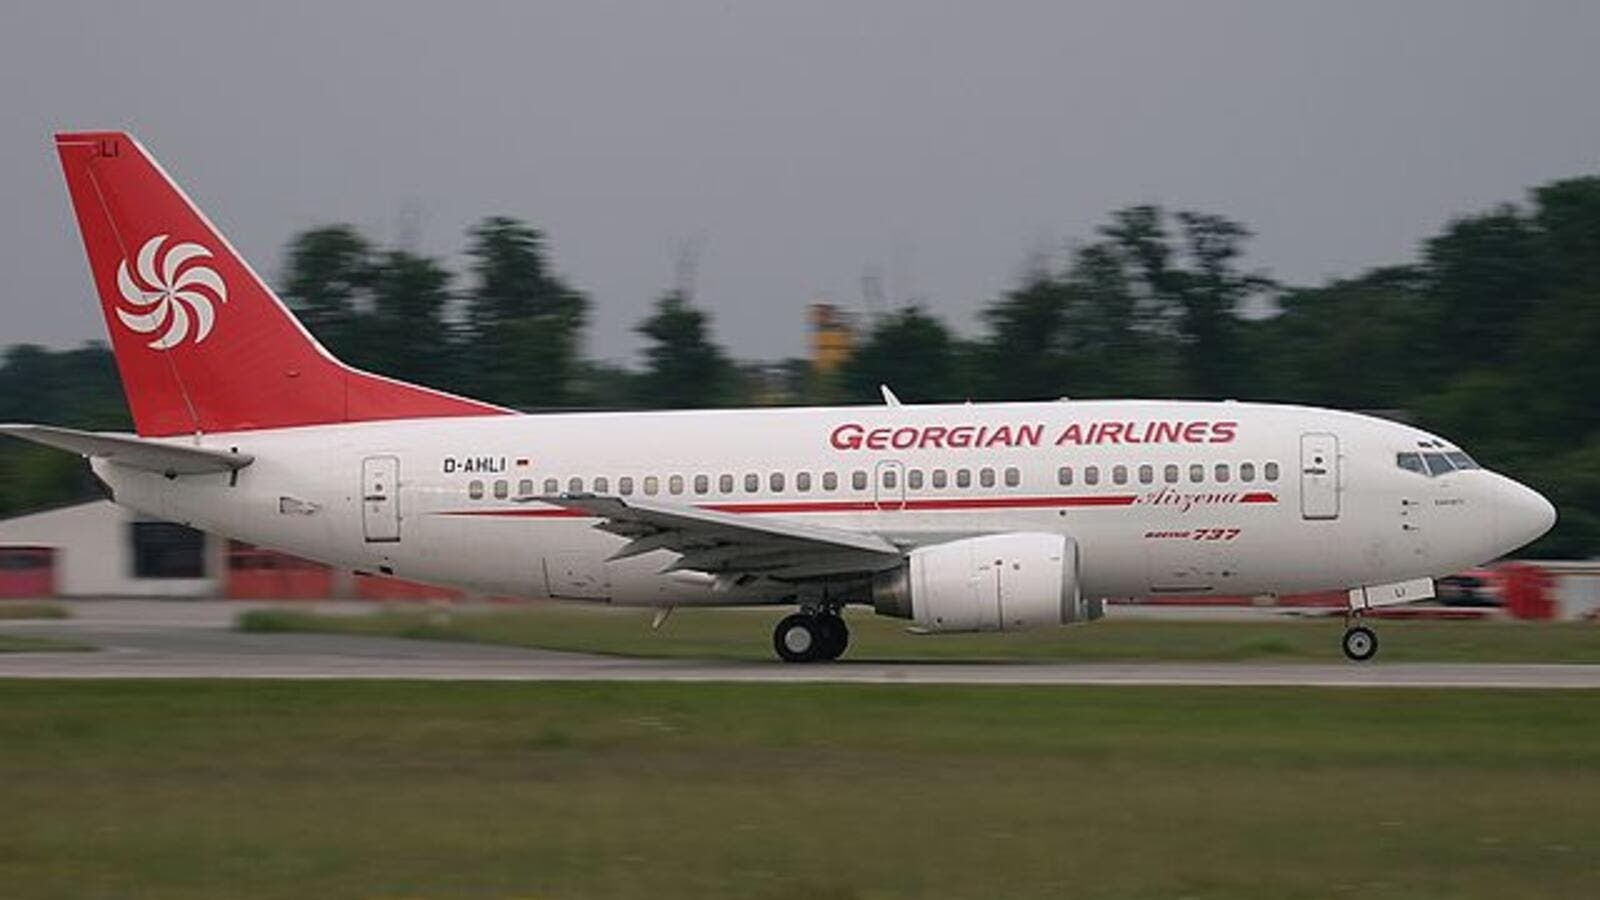 During this summer,  Georgian Airways Company started operating direct flights from Dammam to the Georgian capital Tbilisi for the first time. (Wikimedia Commons)